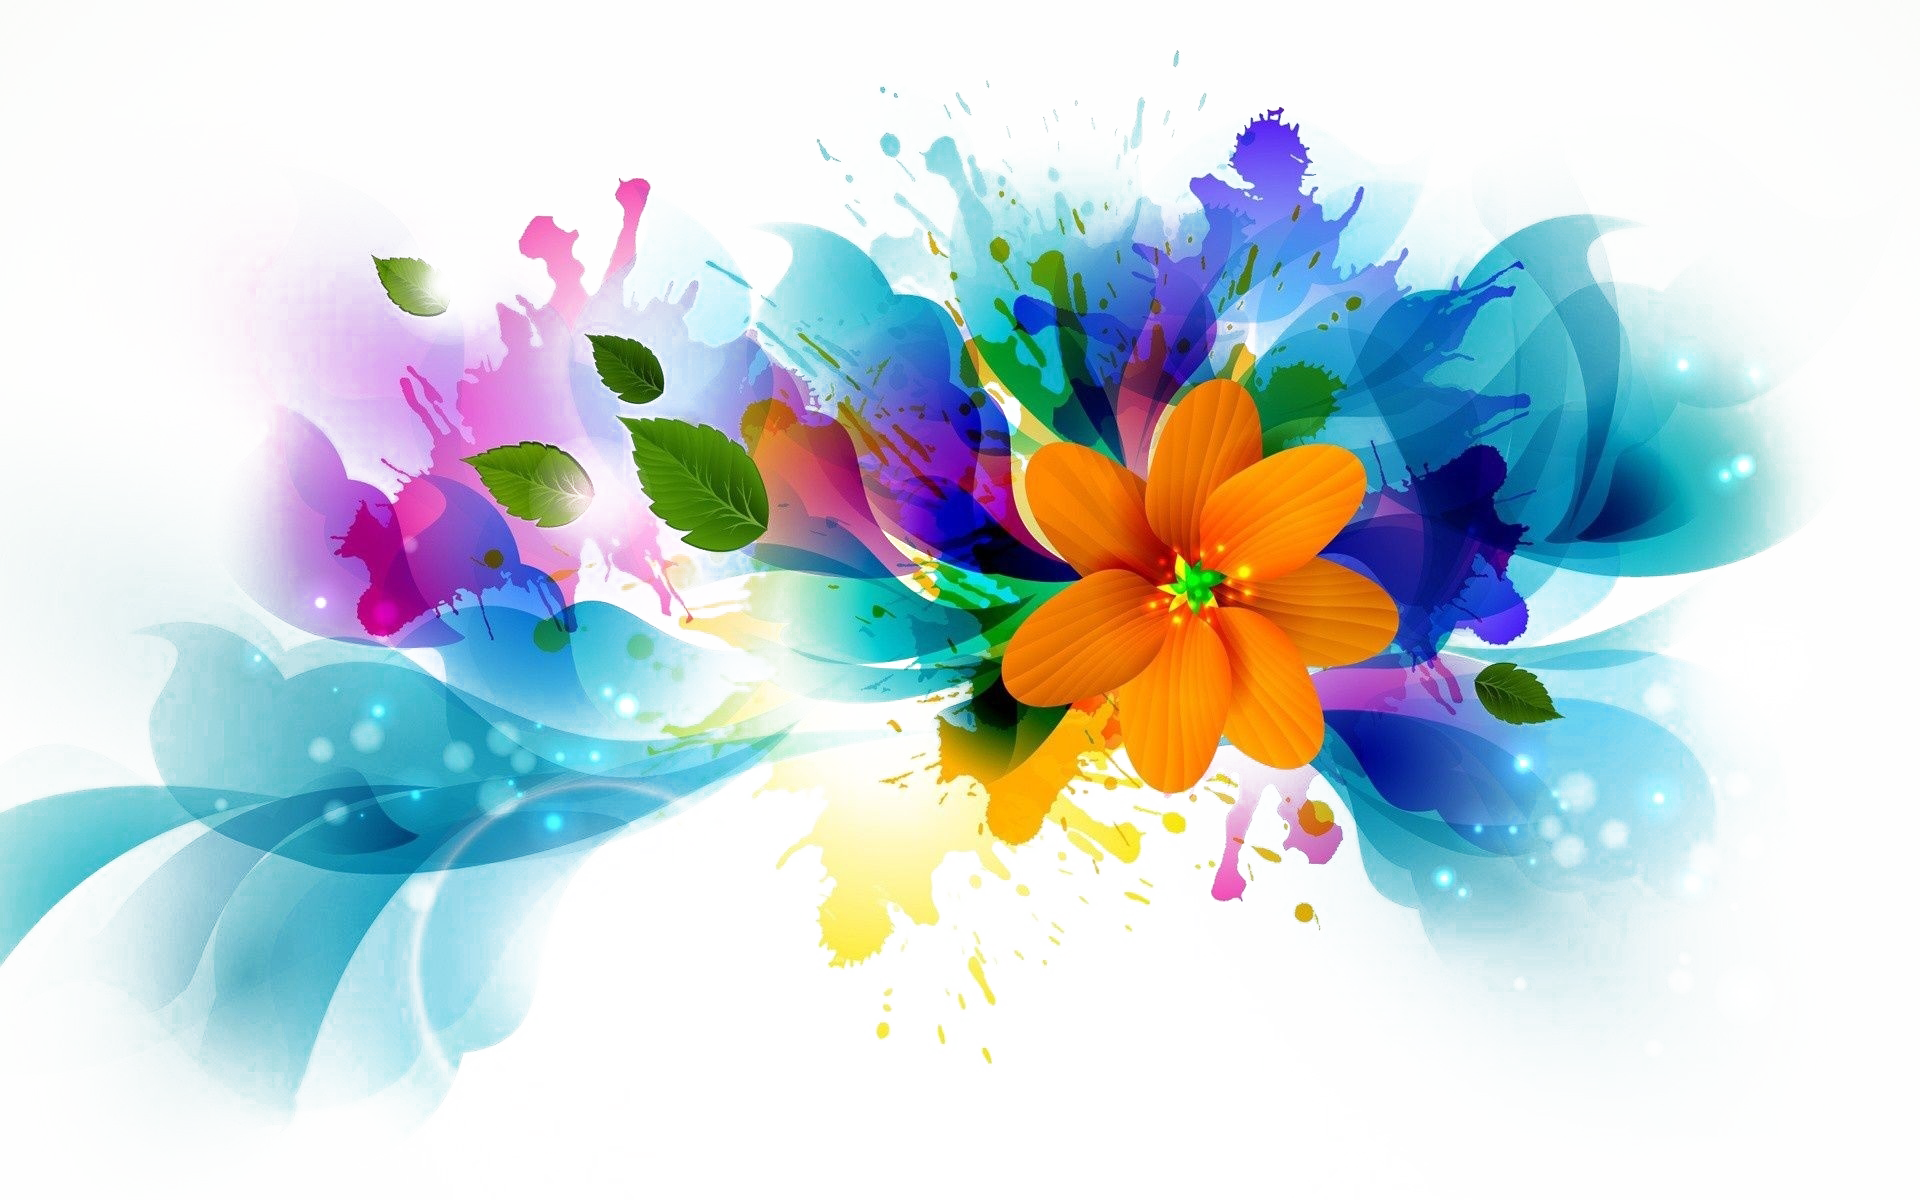 Flowers background png. Abstract flower image arts